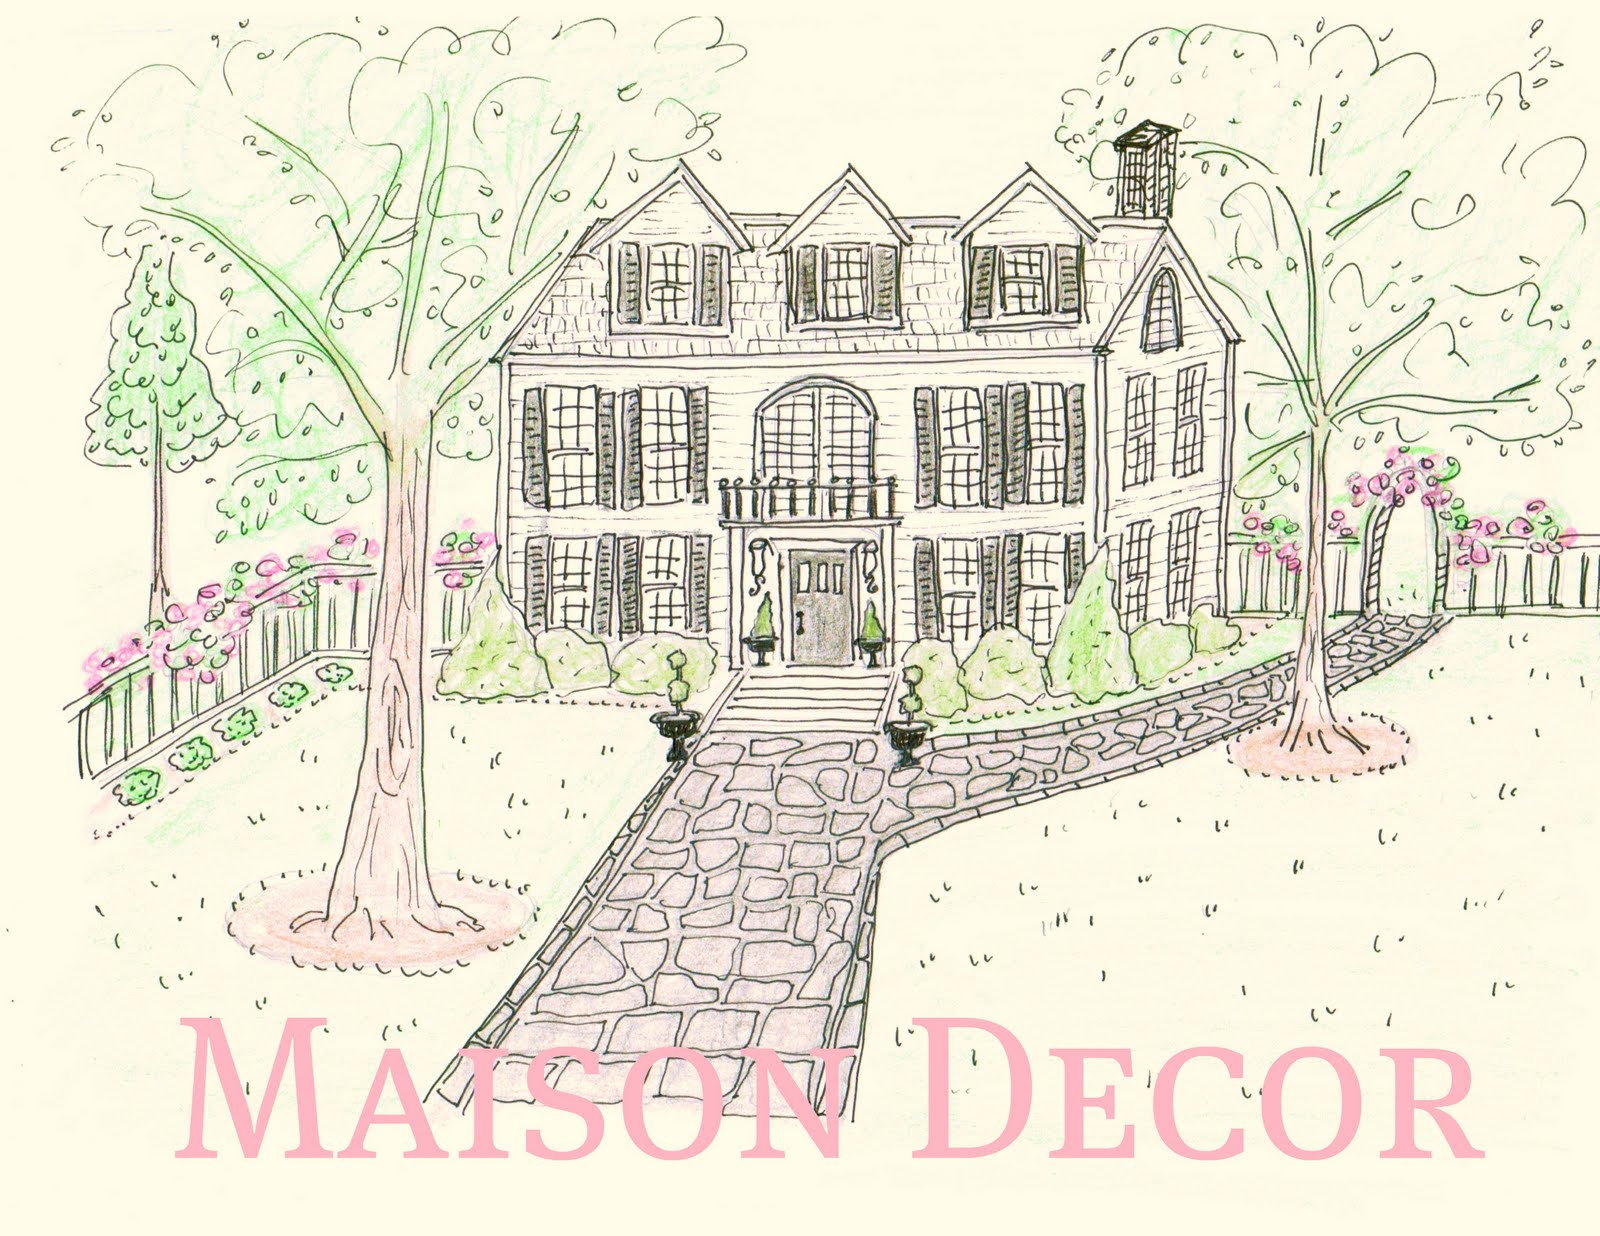 Maison decor designing a new blog header please comment for Dicor maison france